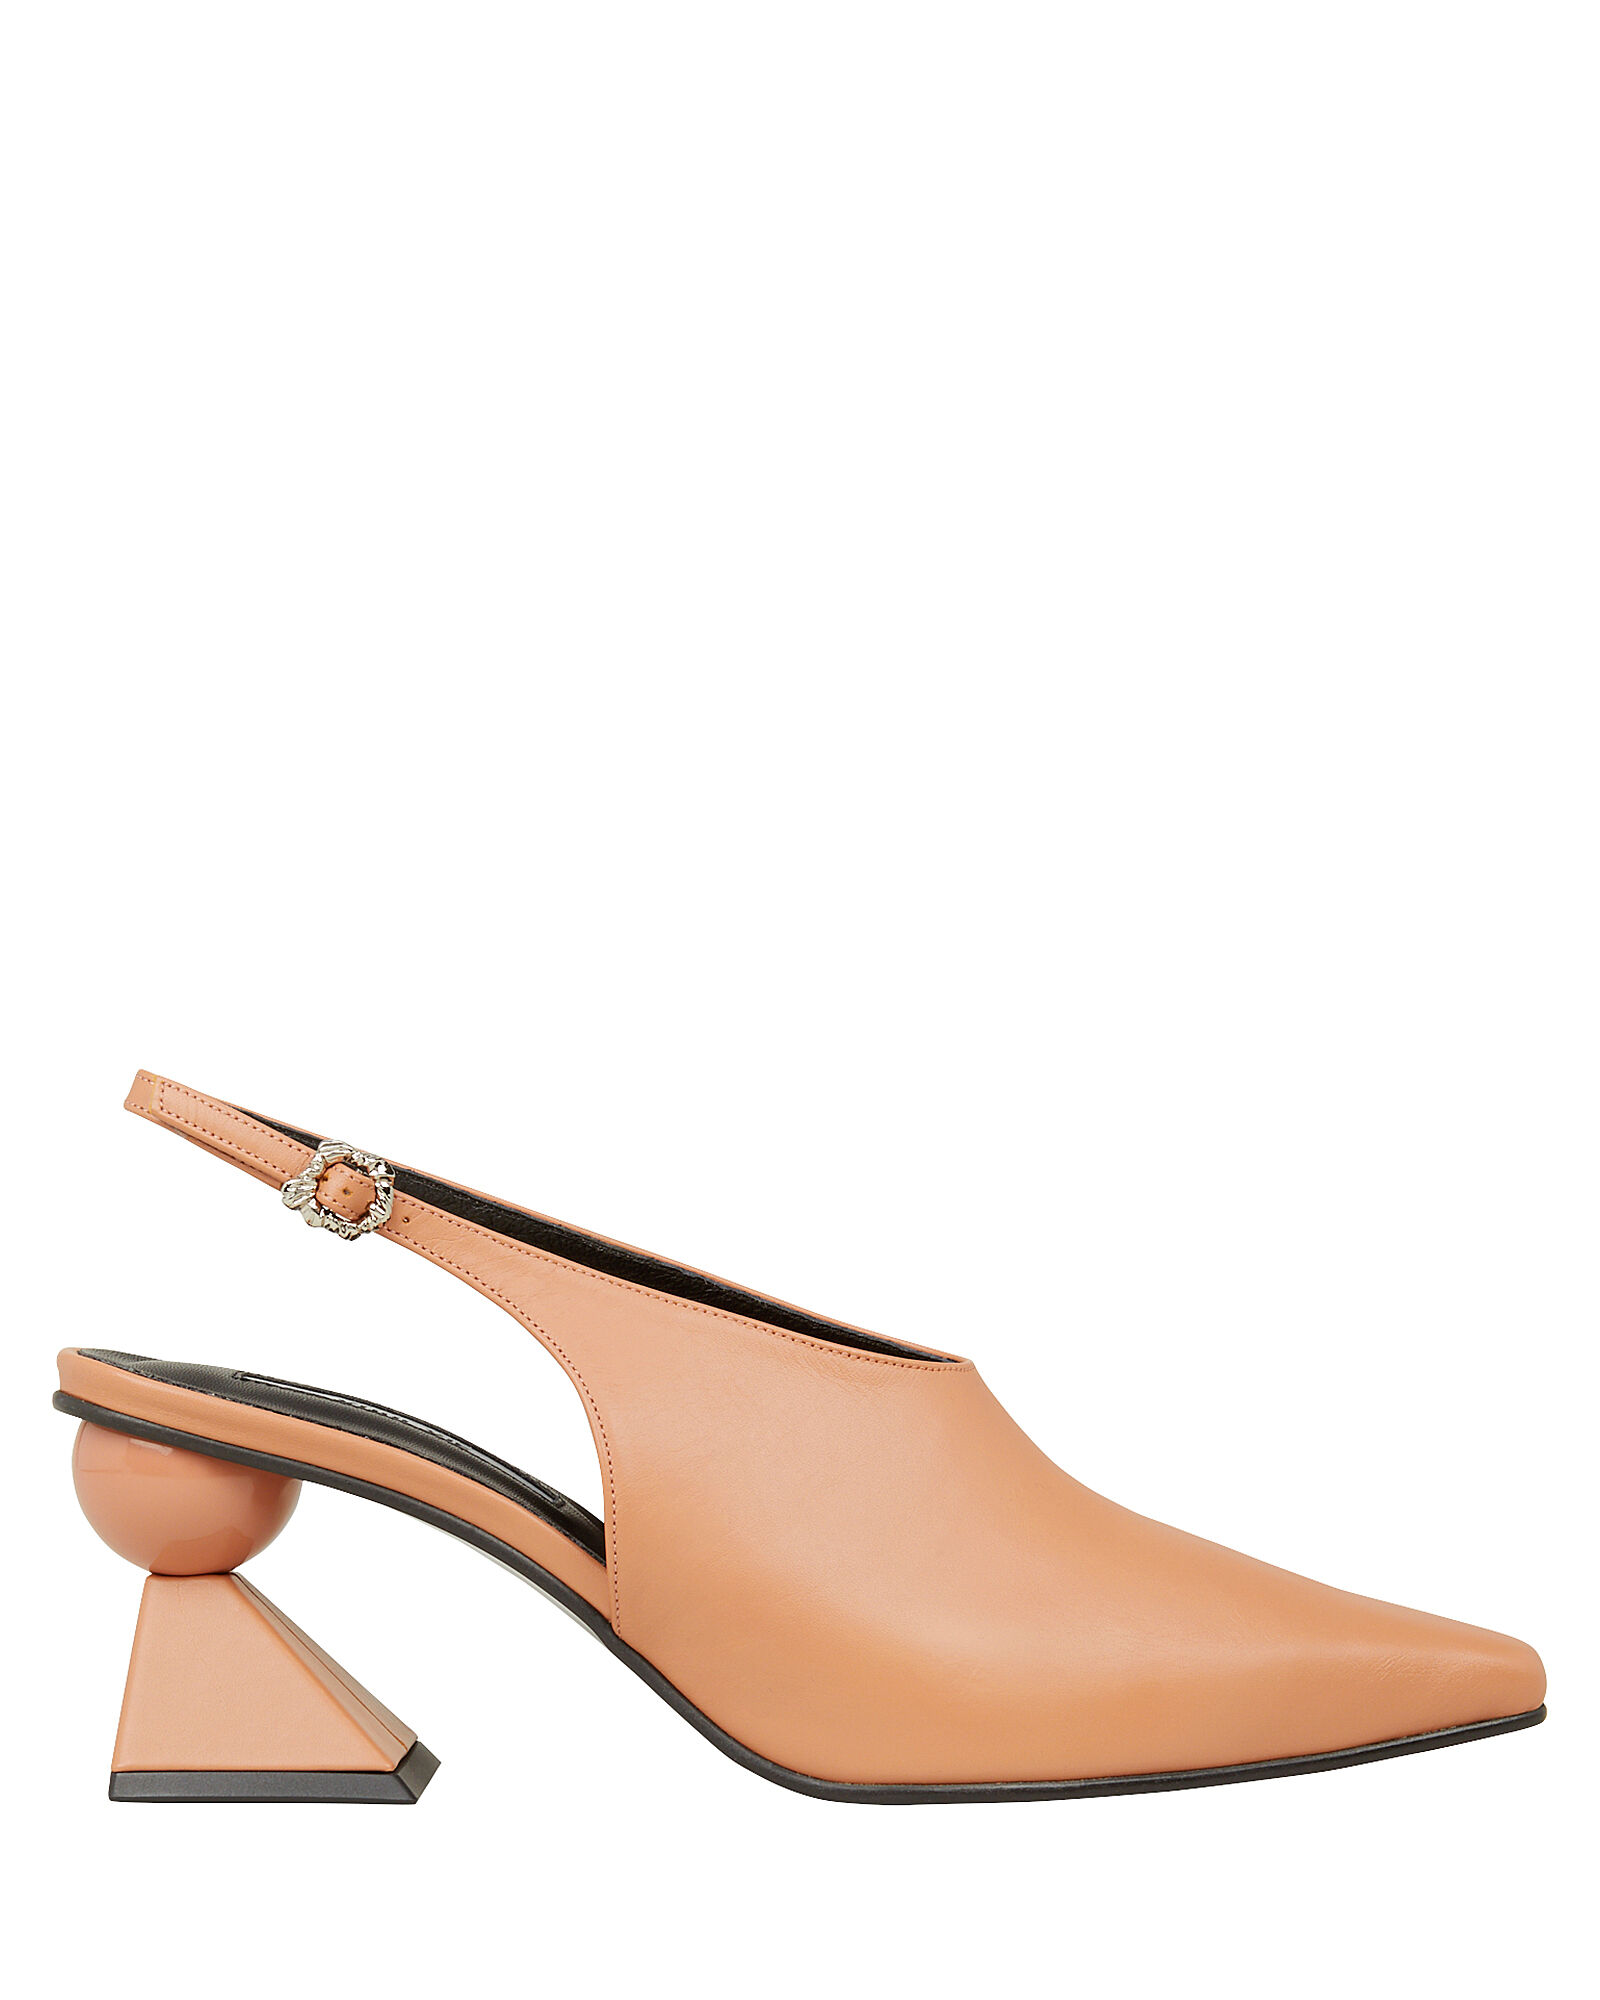 Selena Abstract Heel Slingback Pumps, BEIGE, hi-res